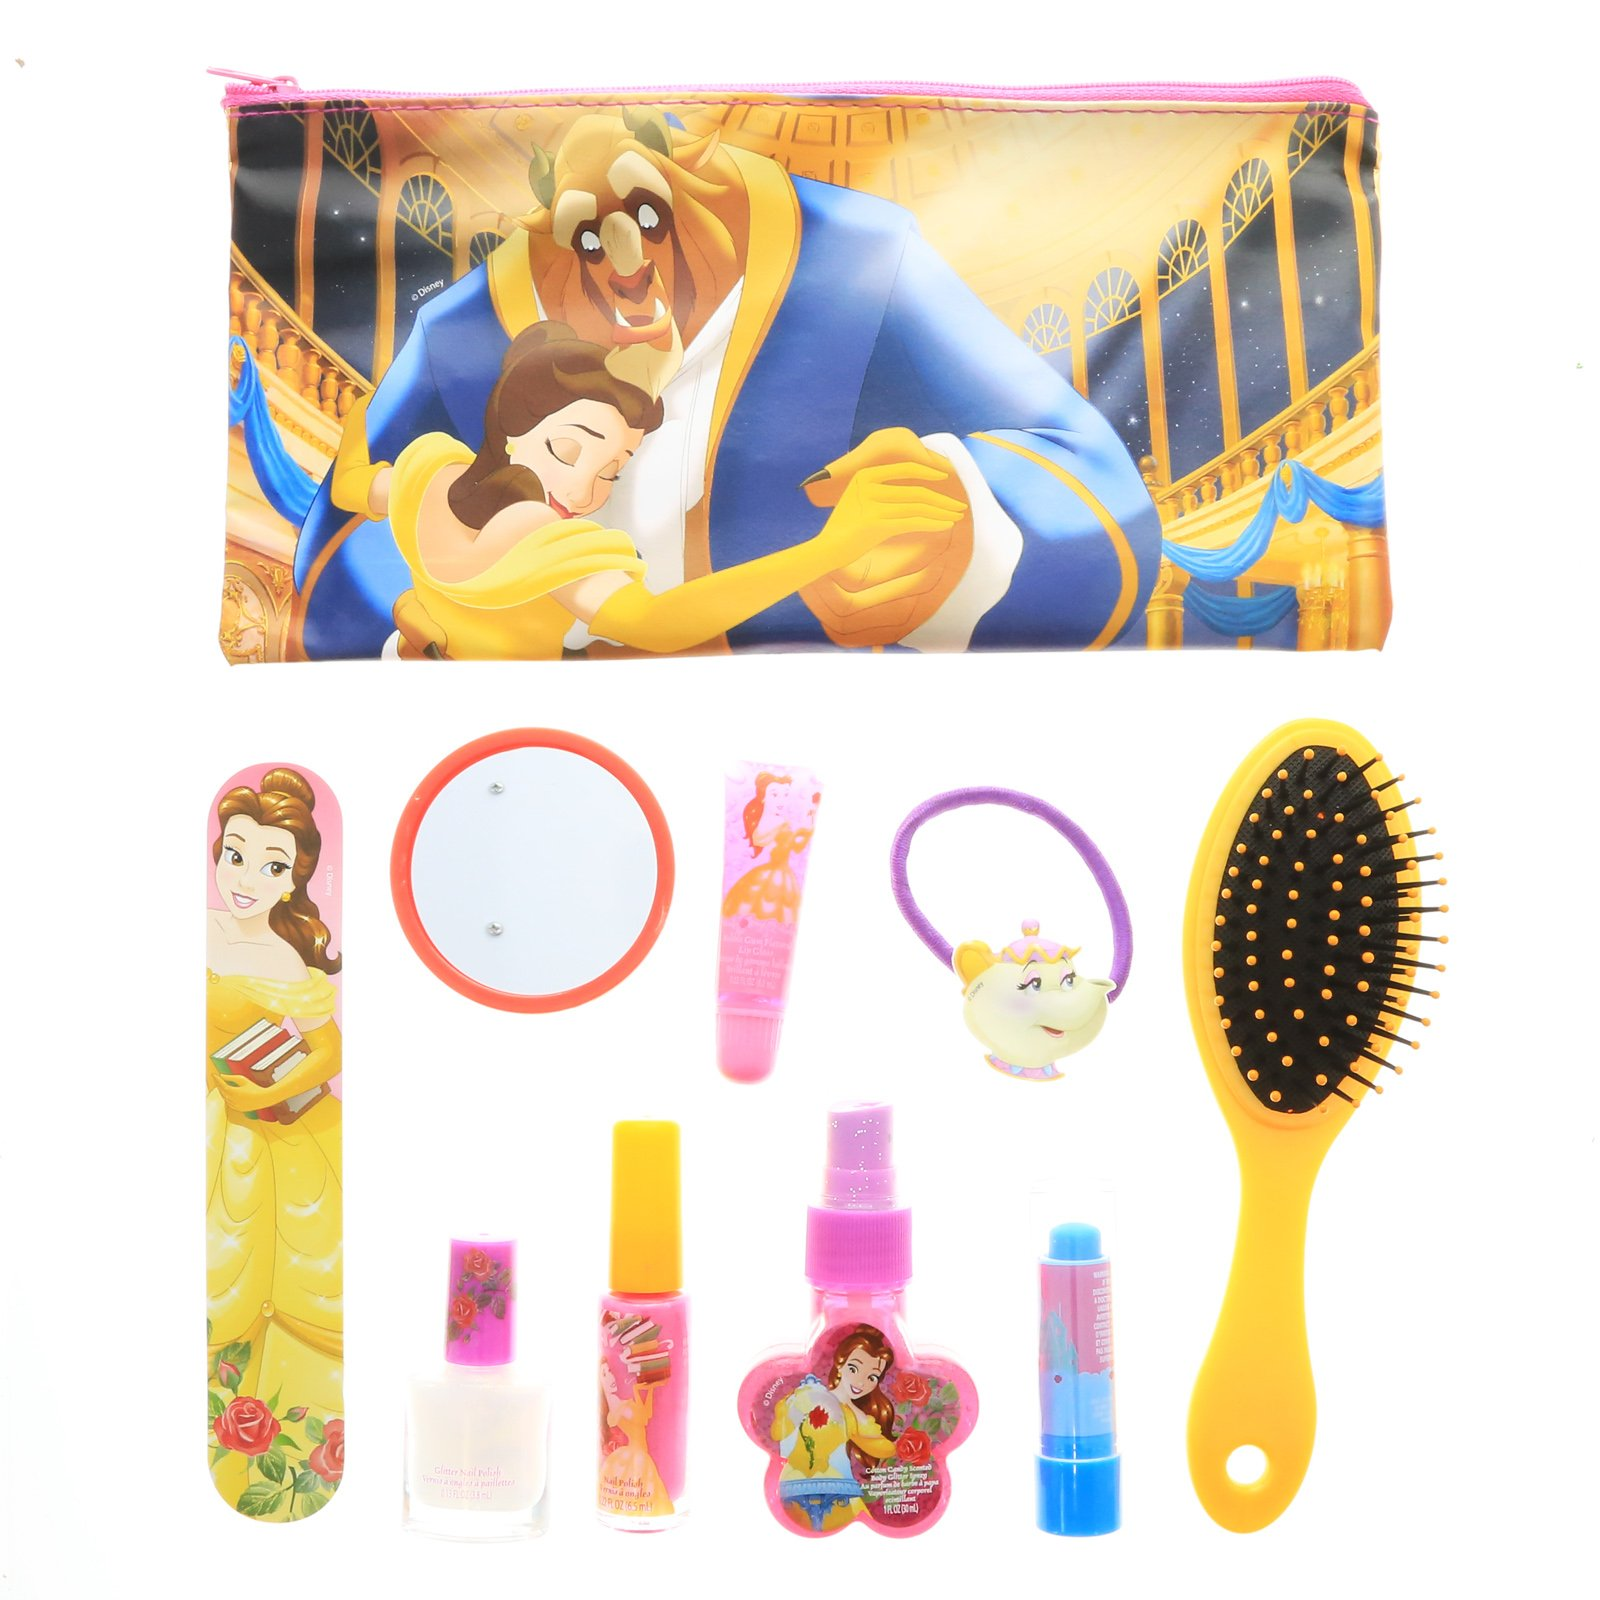 Disney Beauty and the Beast Girls Cosmetic Accessories Gift Set Brush Make Up